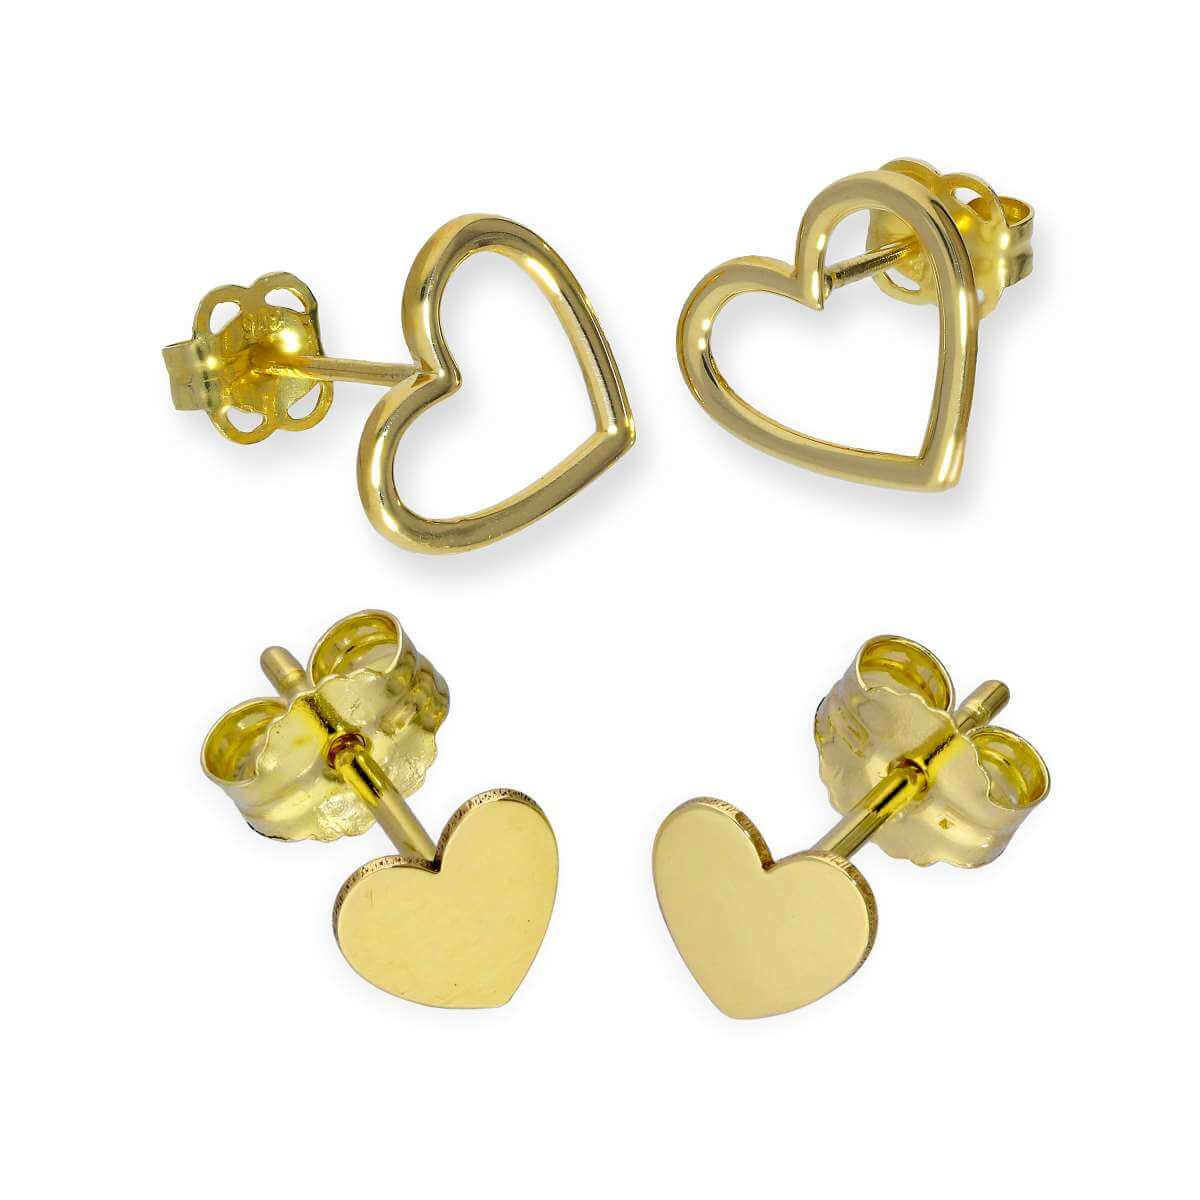 Double 9ct Gold Heart Stud Earrings - 2 Pack